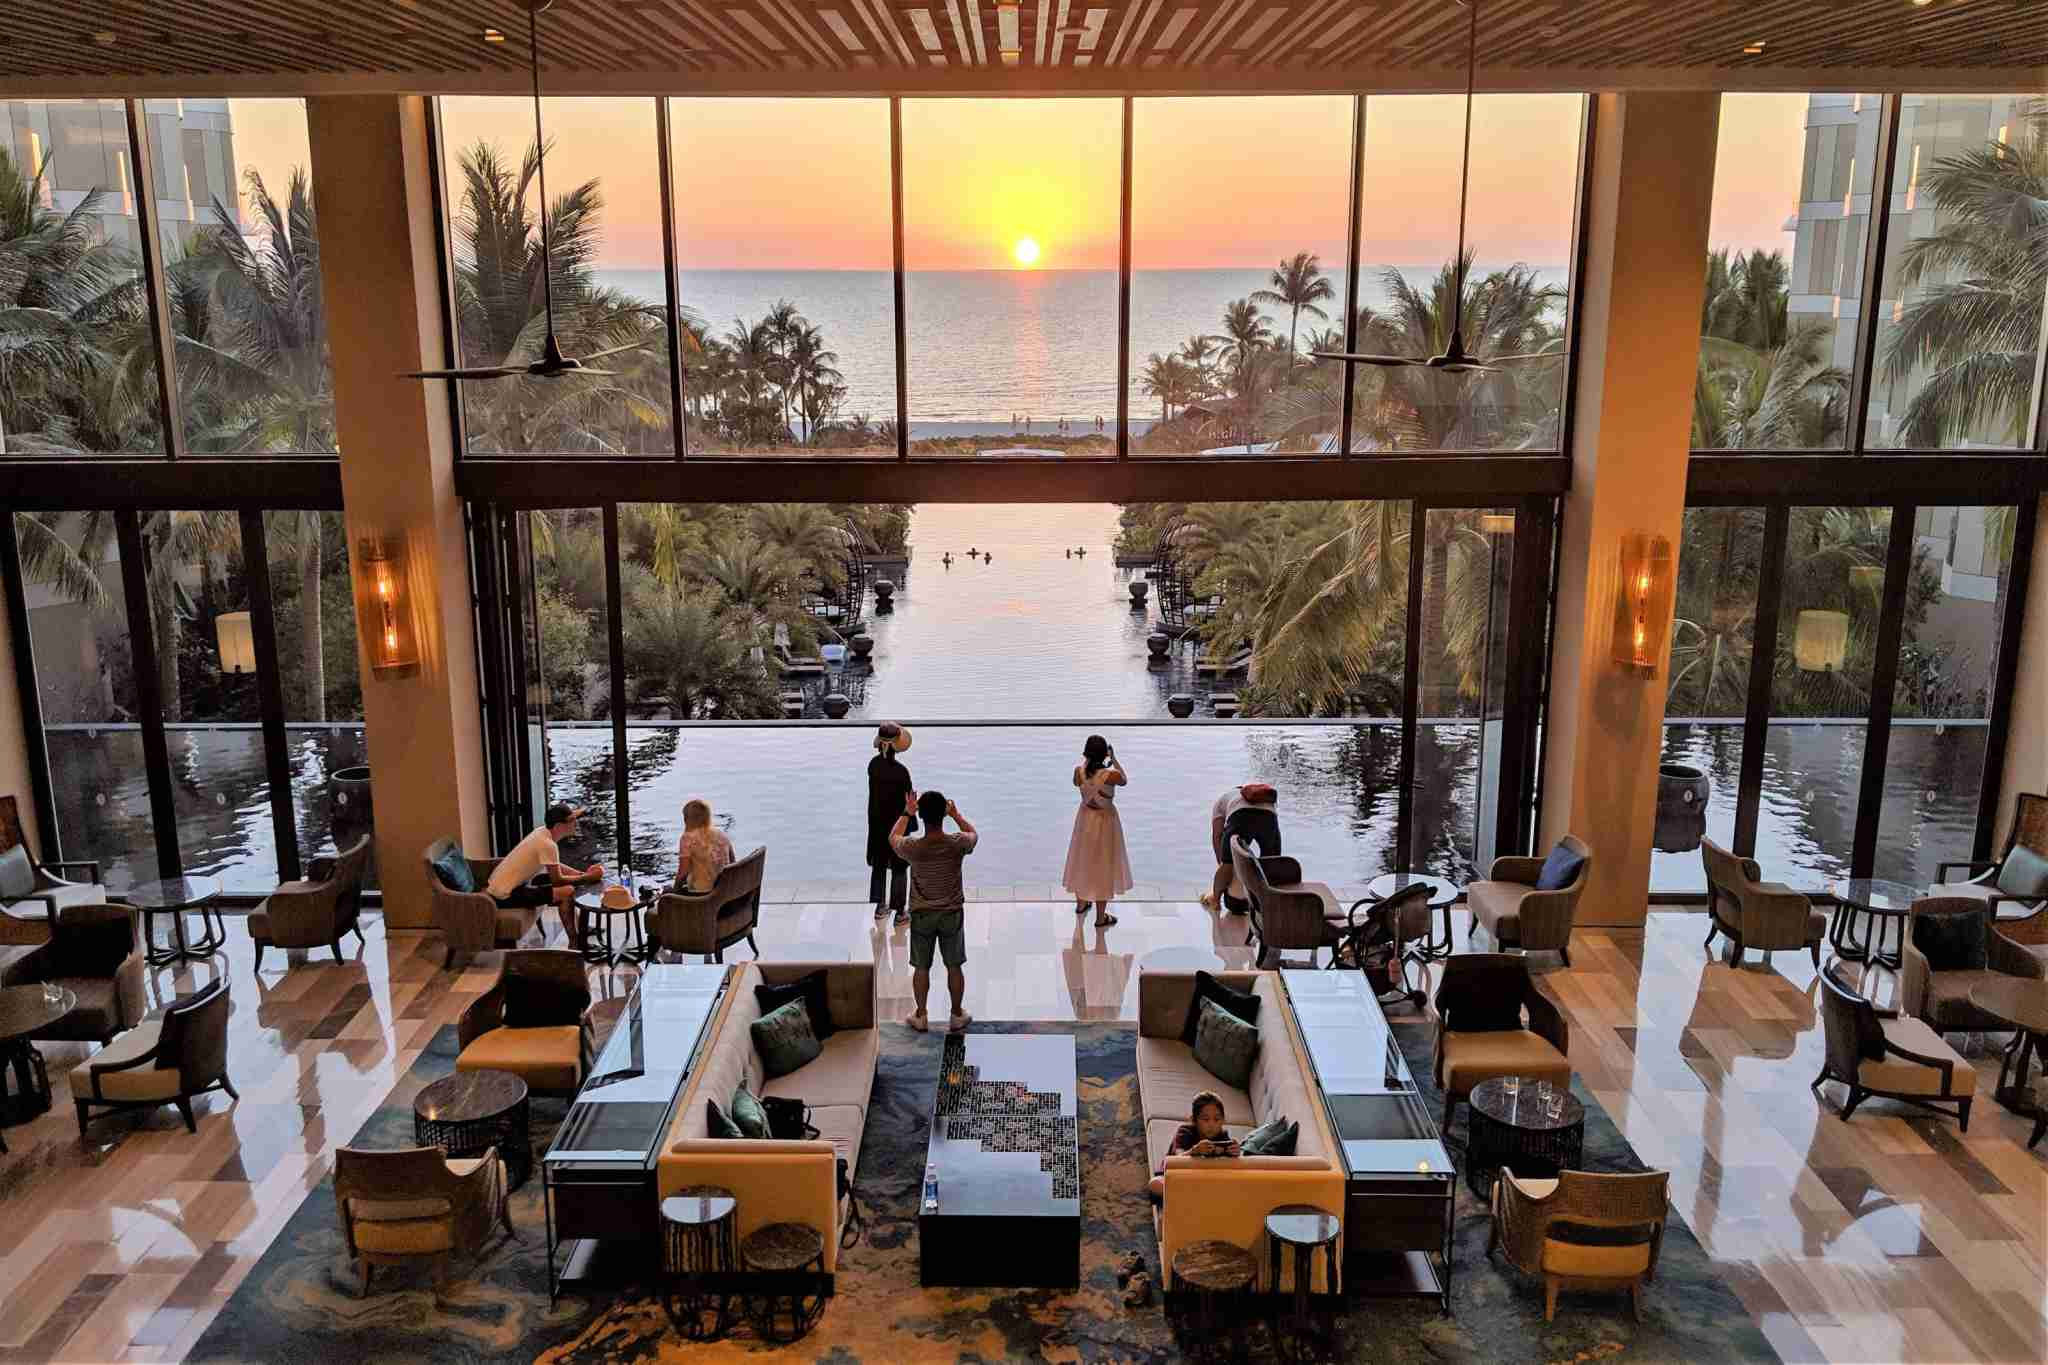 Picture yourself at the InterContinental Phu Quoc at sunset. (Photo by Katie Genter/The Points Guy)